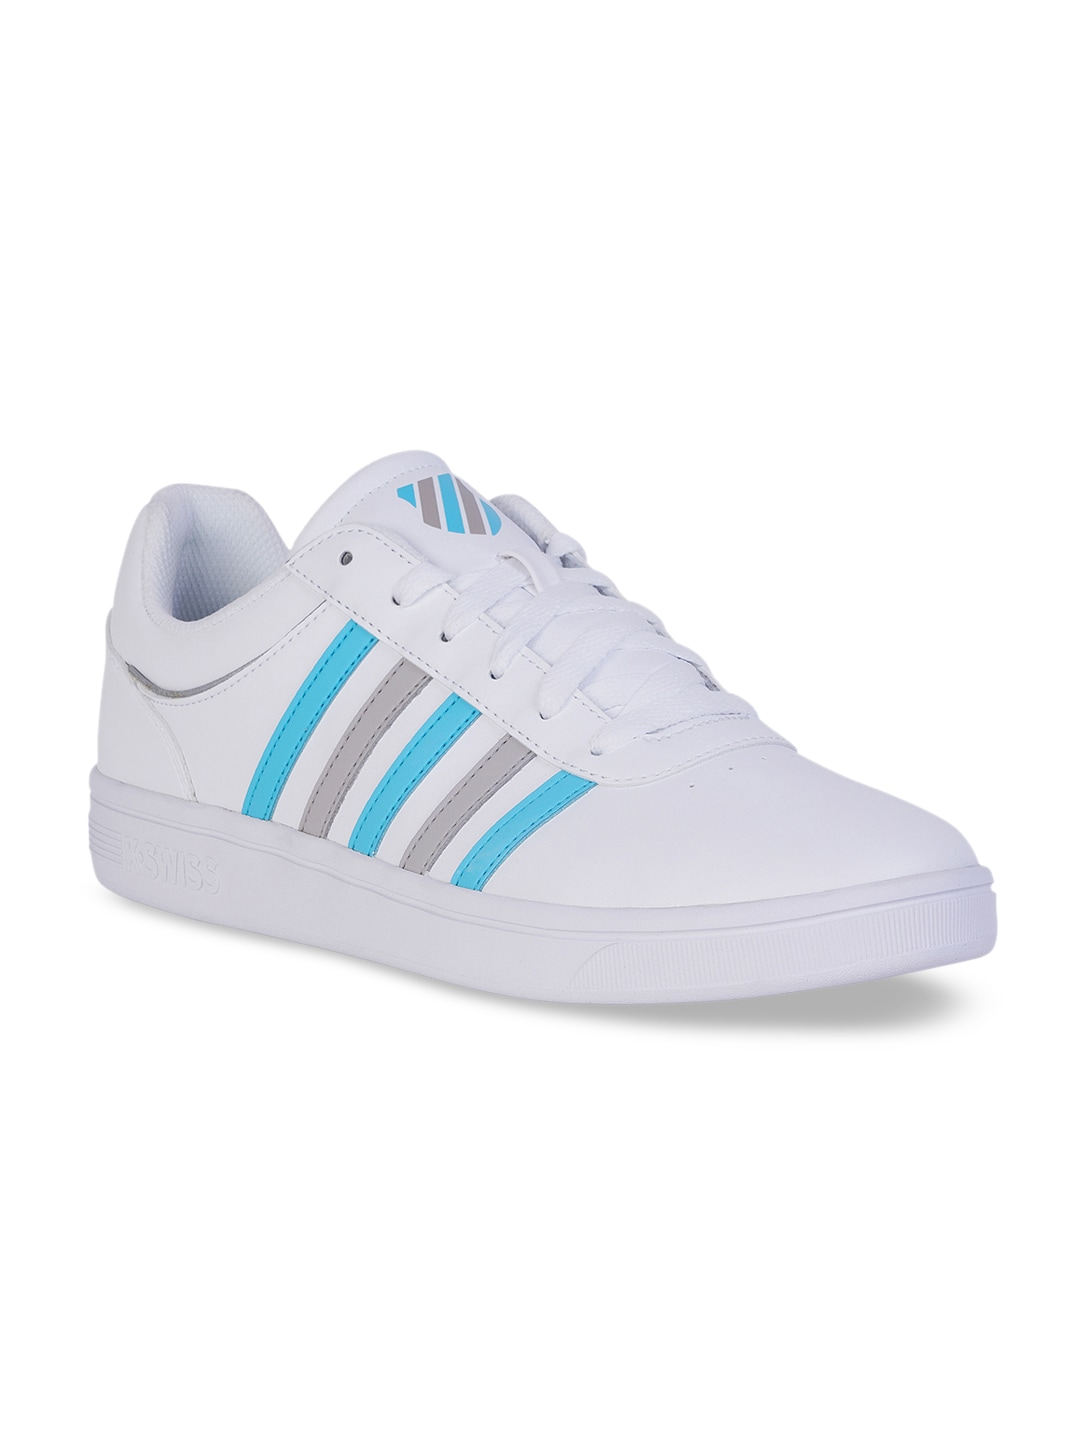 save off 475c3 7f859 Shoes - Buy Shoes for Men, Women   Kids online in India - Myntra